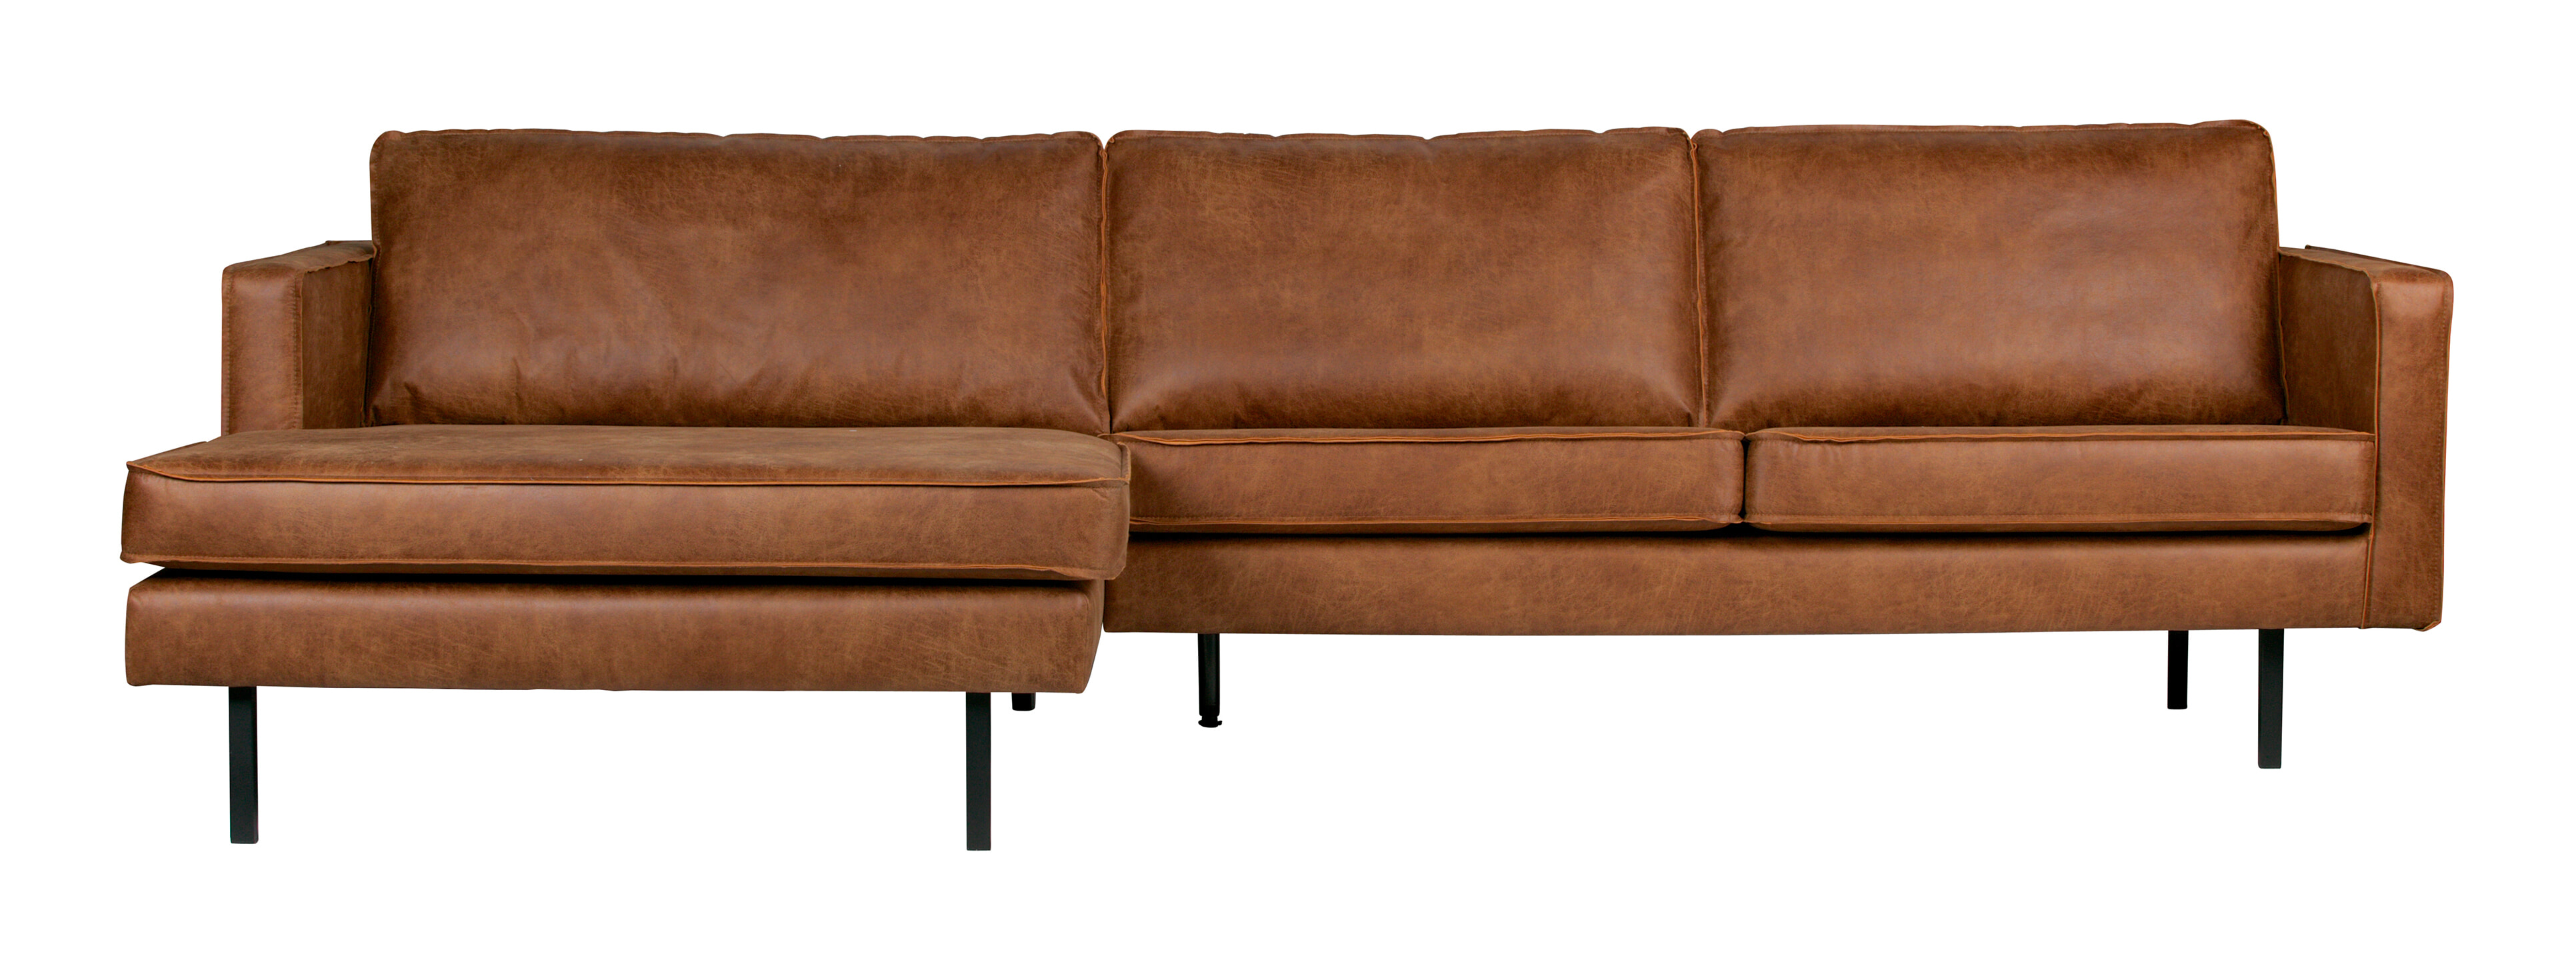 BePureHome Loungebank 'Rodeo' Links, Eco Leder, kleur Cognac